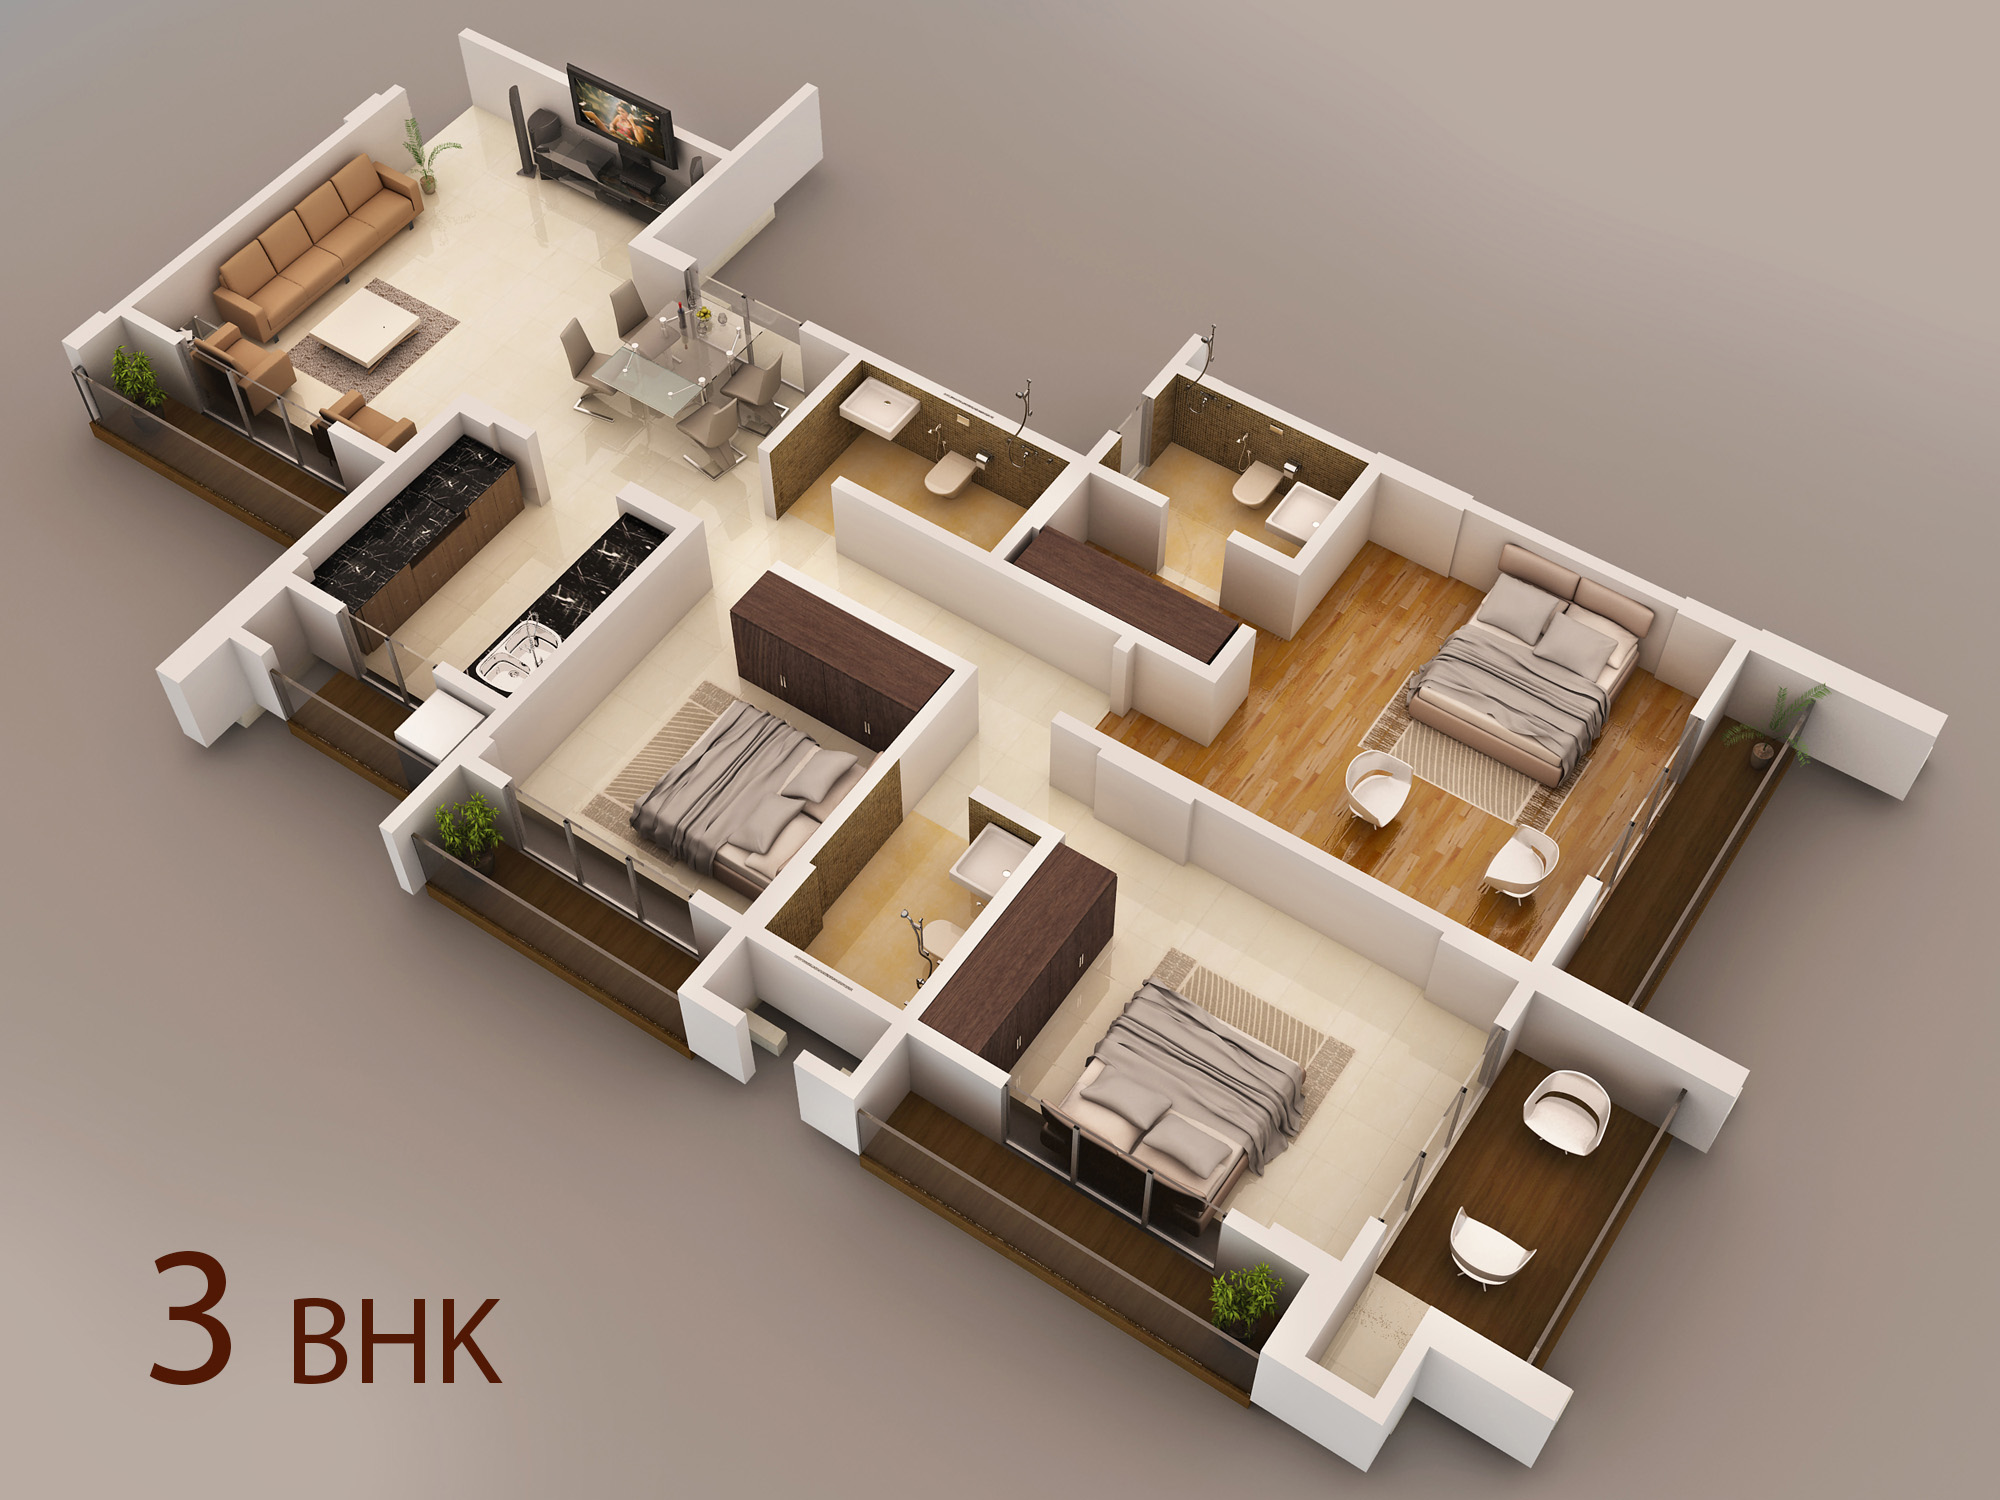 23 original home interior design for 3bhk flat